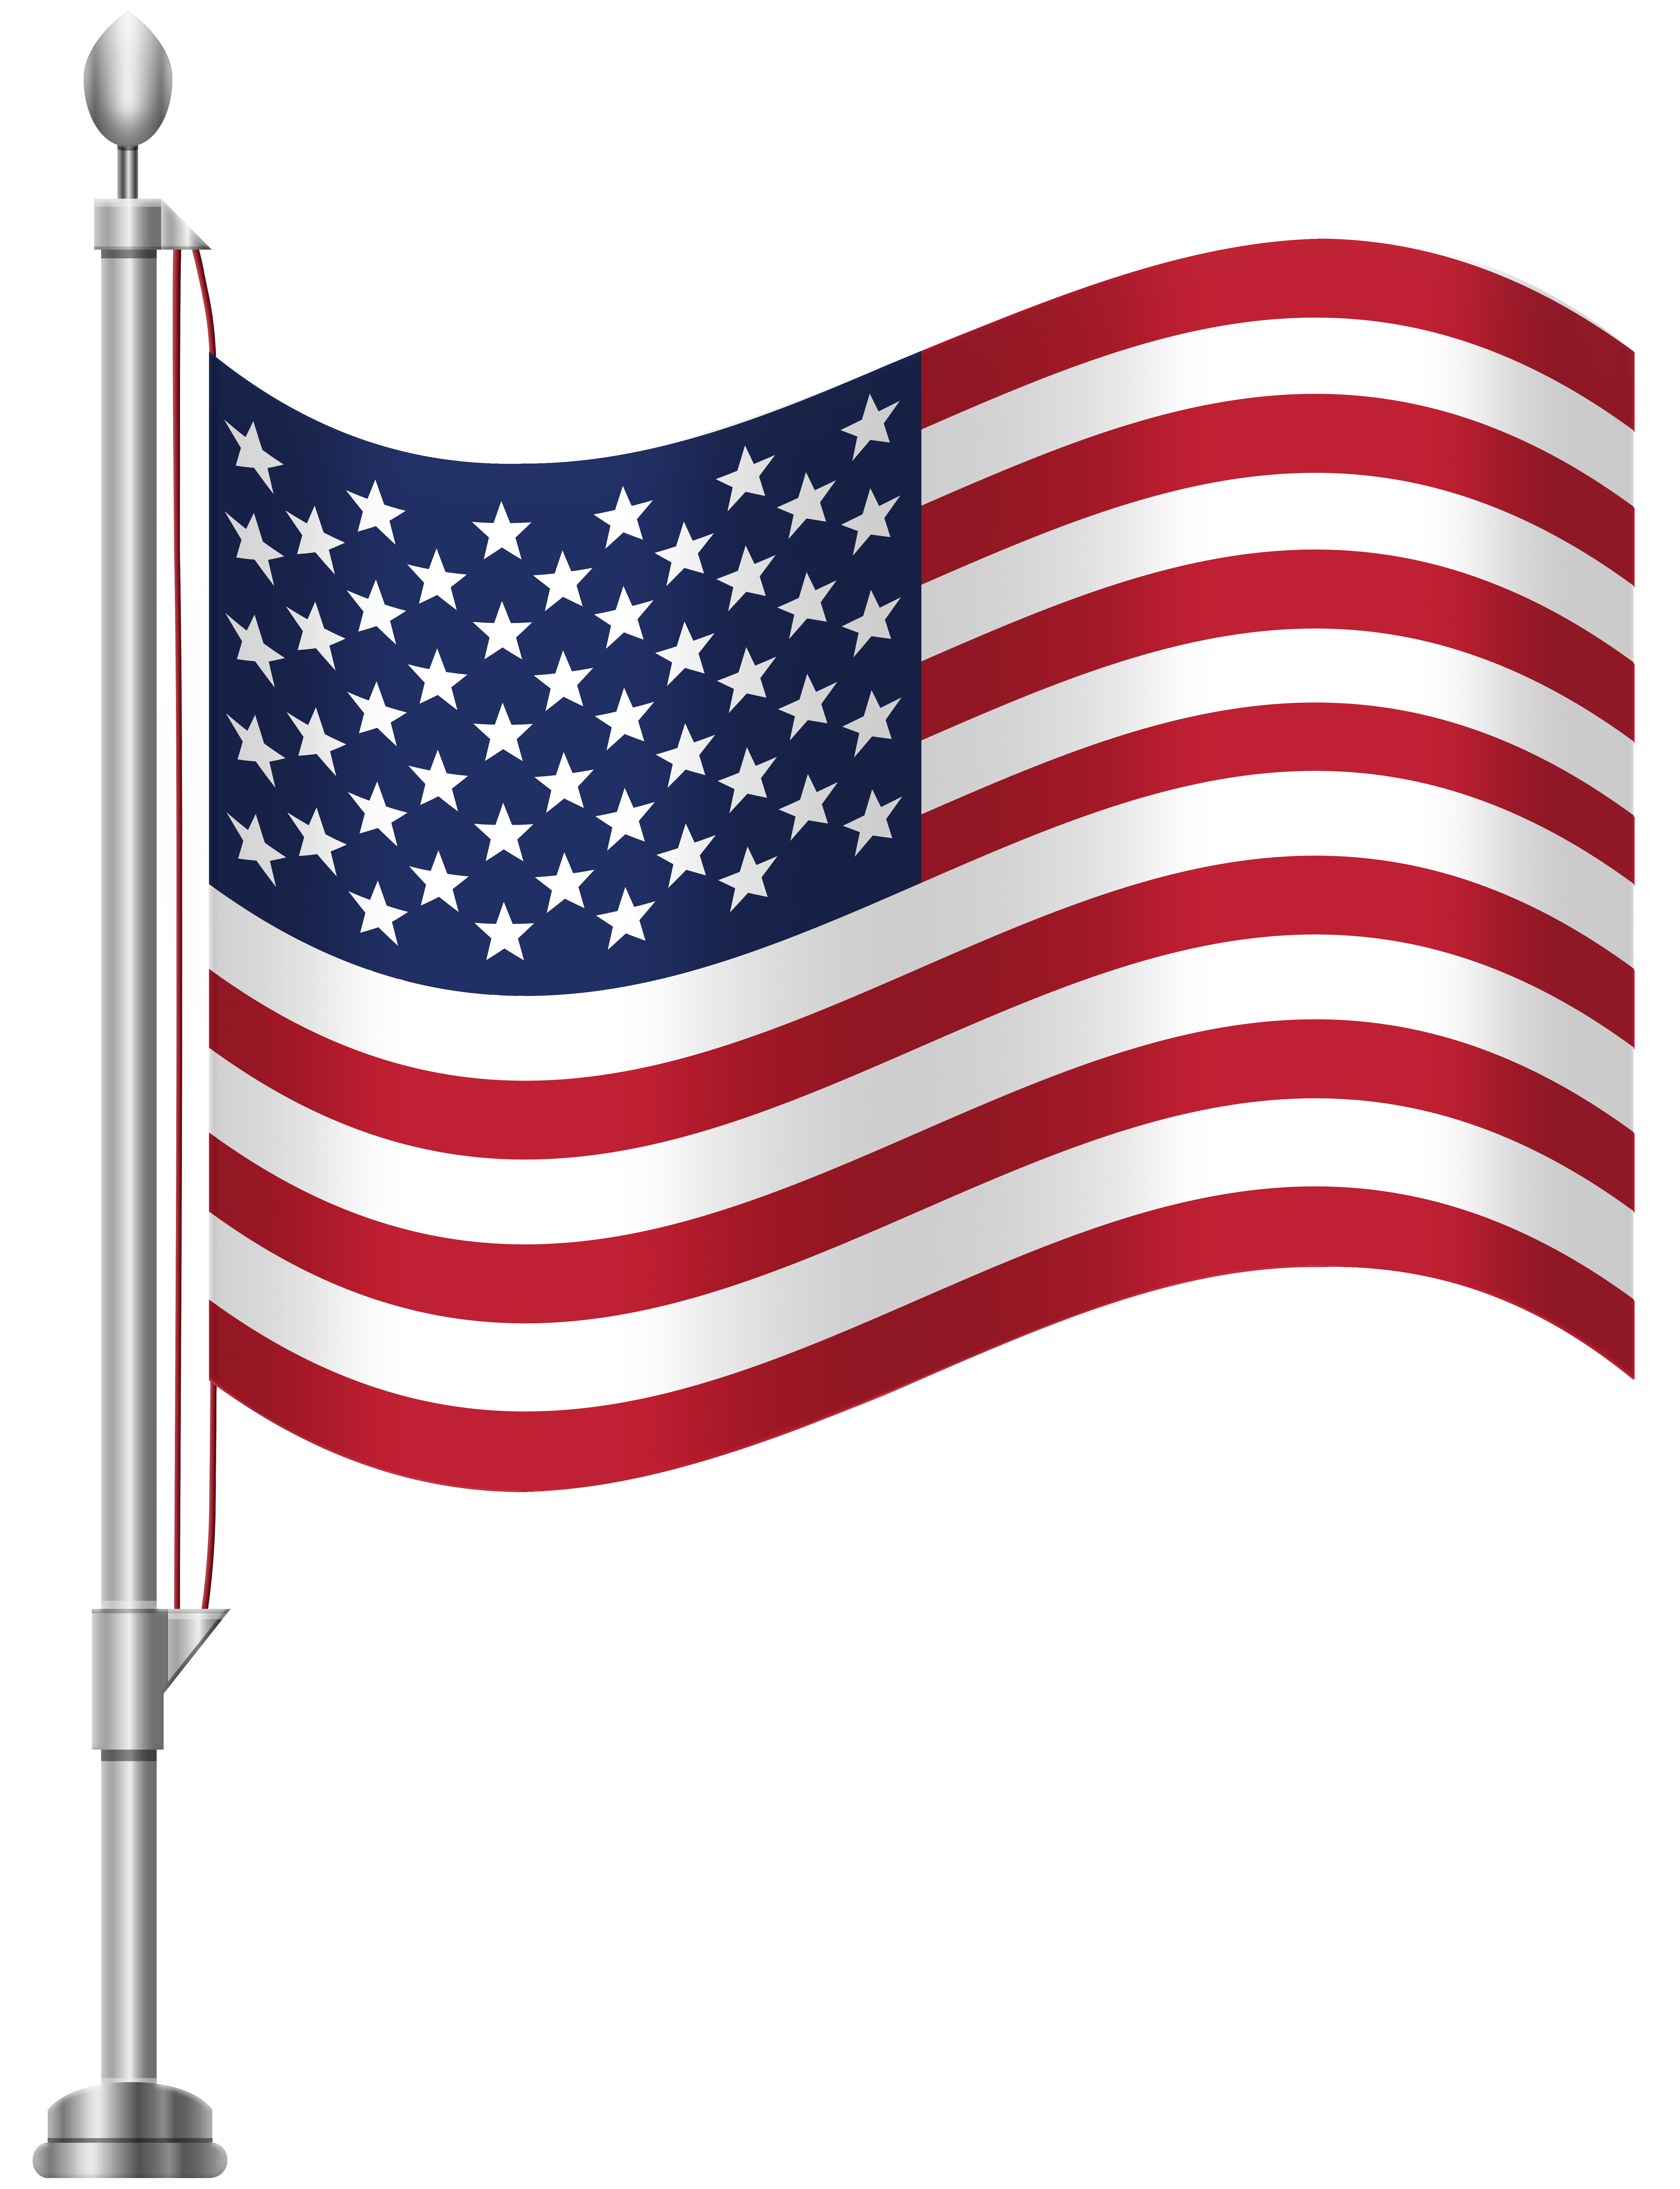 American Flag Png - United States of America Flag PNG Clip Art